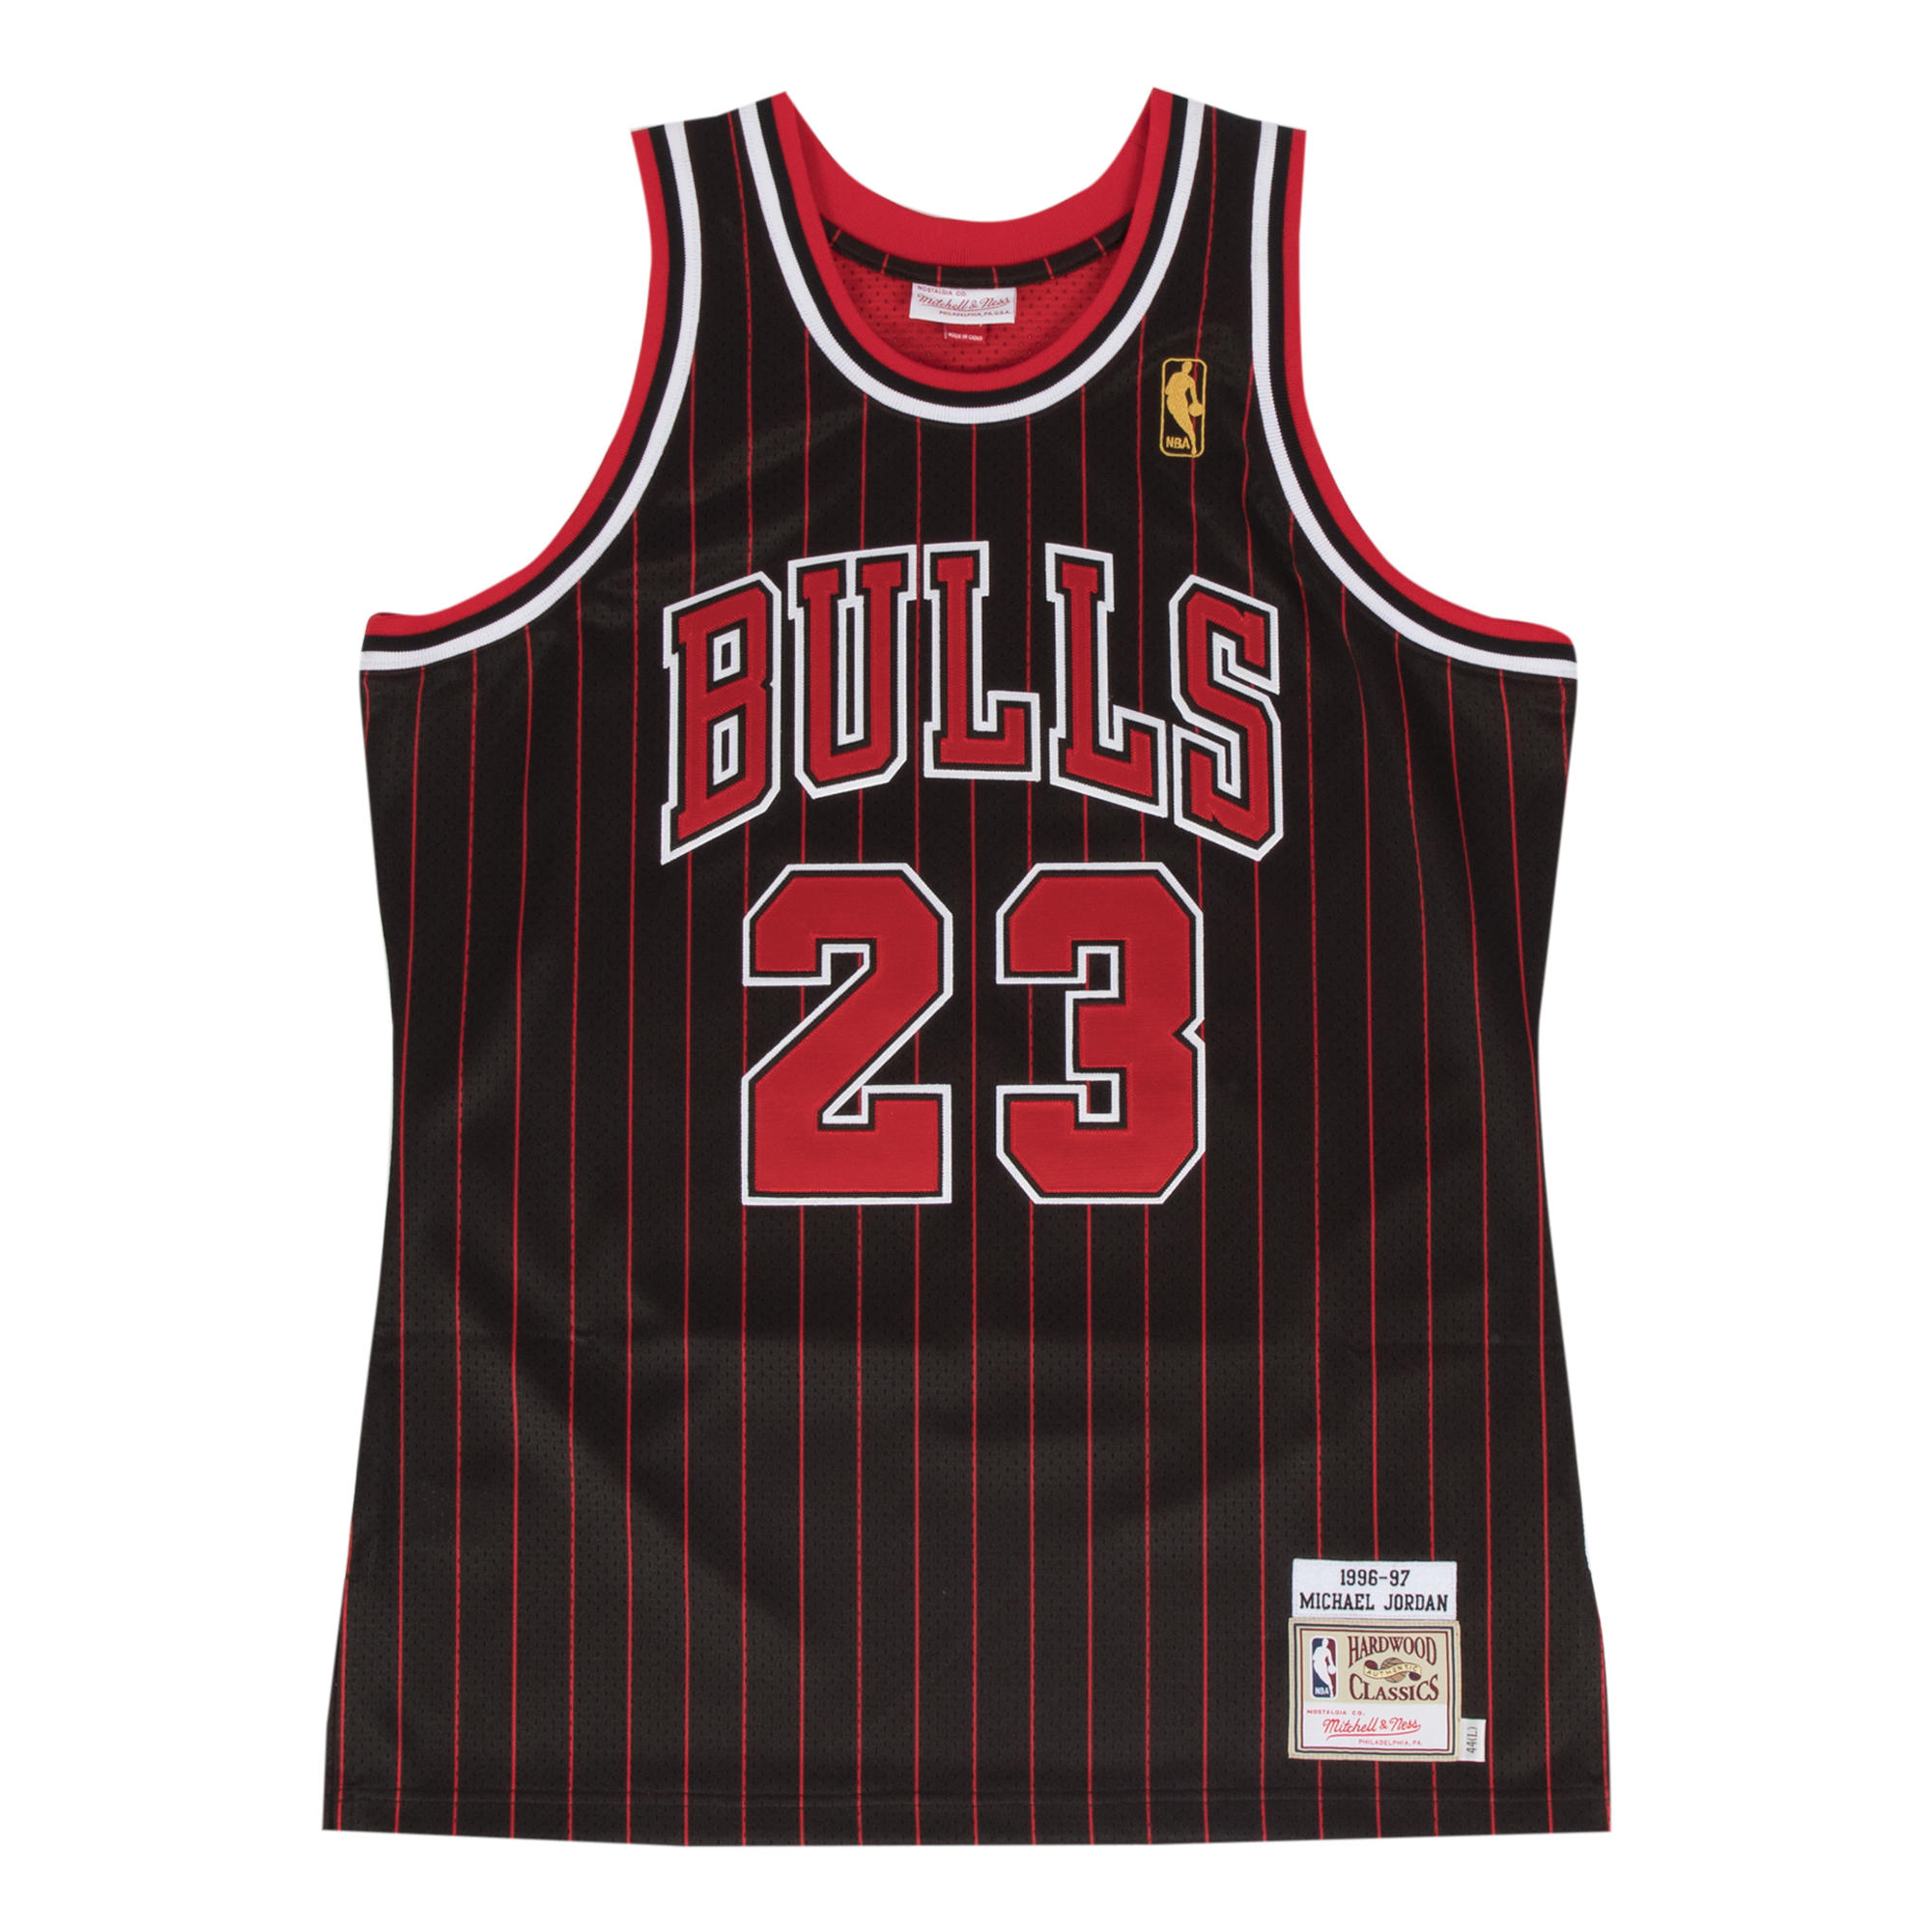 4d6dedd62a7 Mitchell & Ness | Chicago Bulls Michael Jordan 1996-97 Road Authentic Jersey